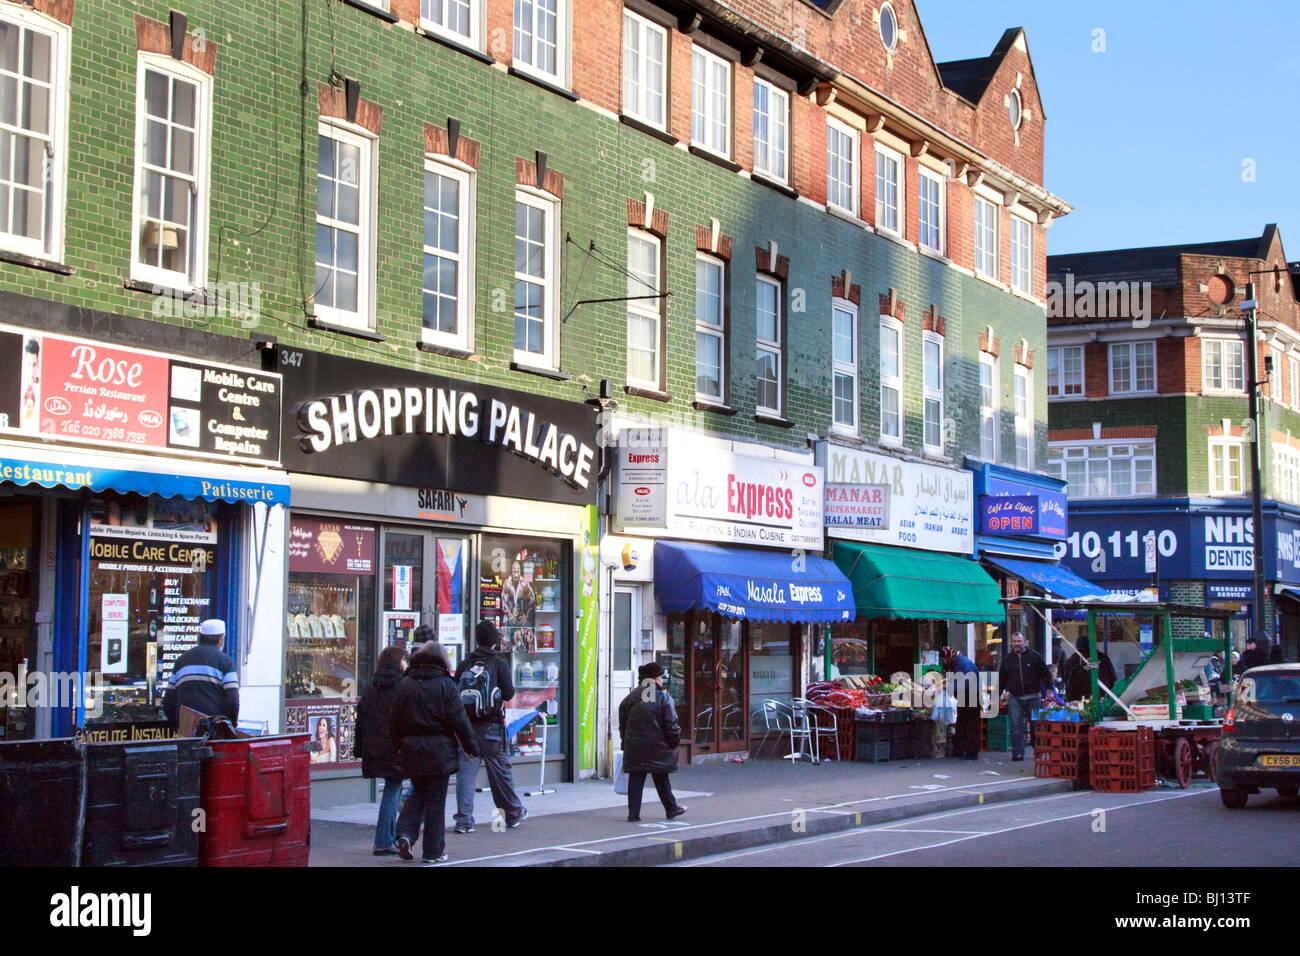 Tiled terraced shops in North End Road West Brompton, London - Stock Image